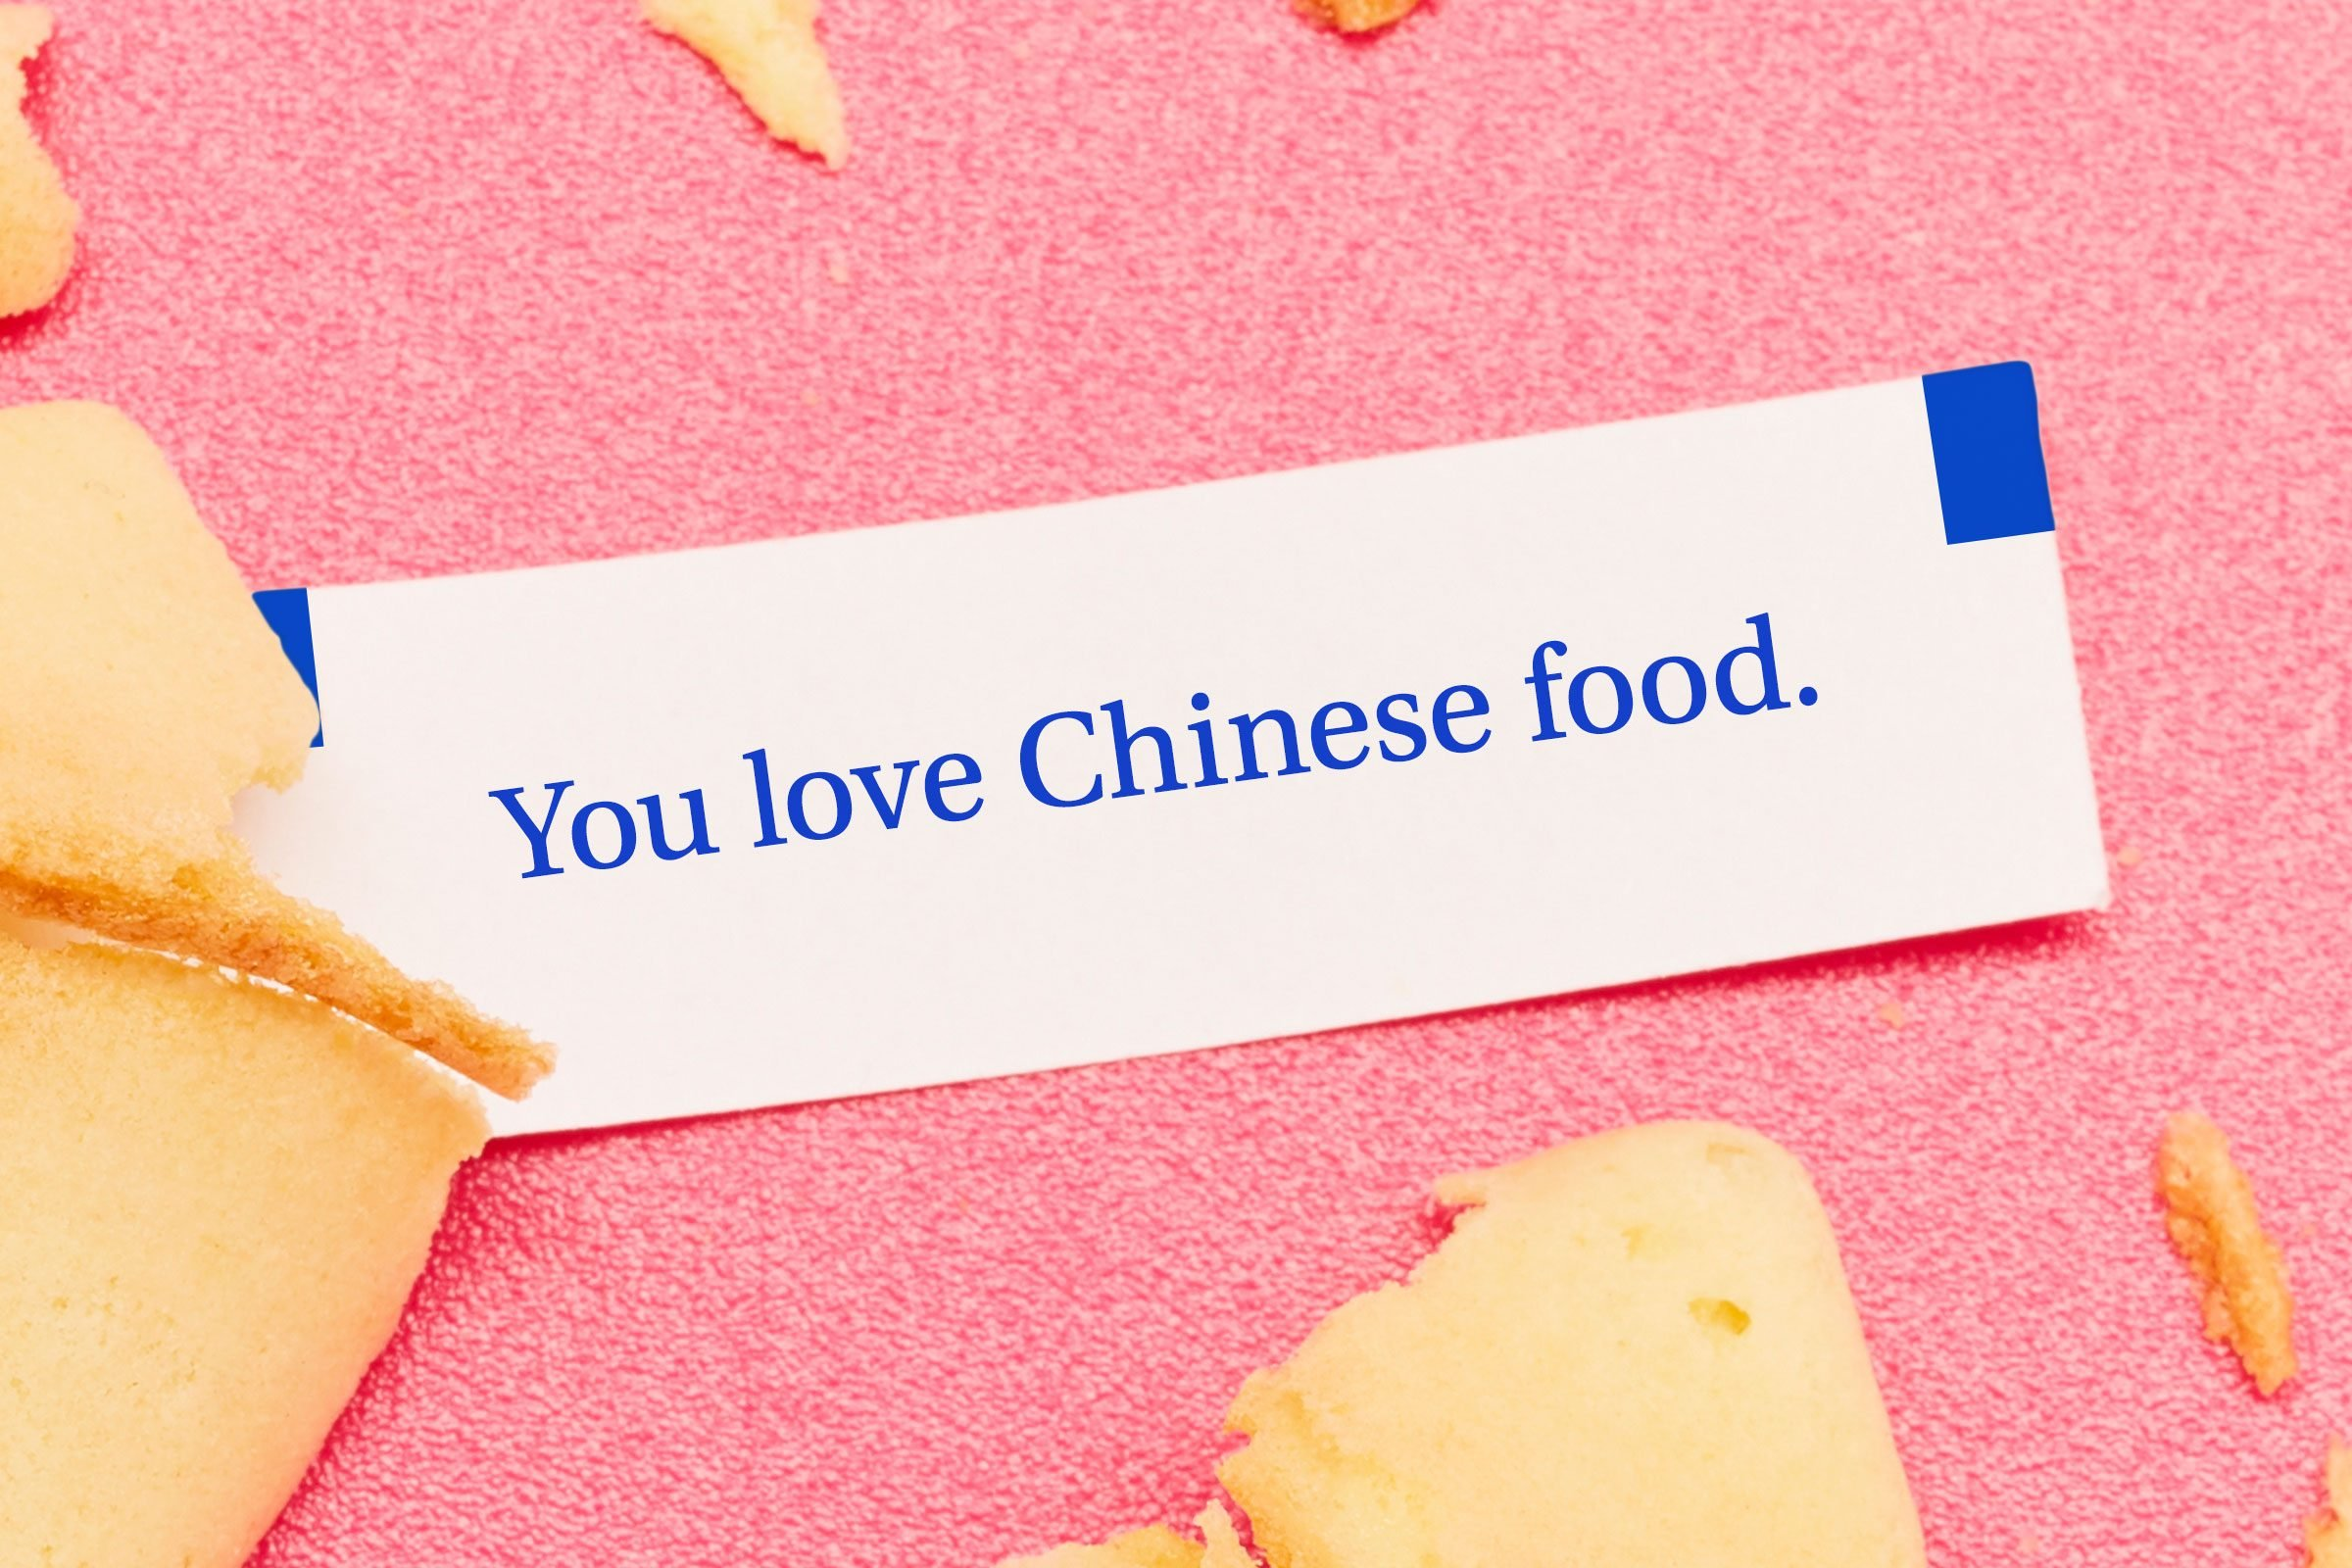 For image: You love Chinese food.